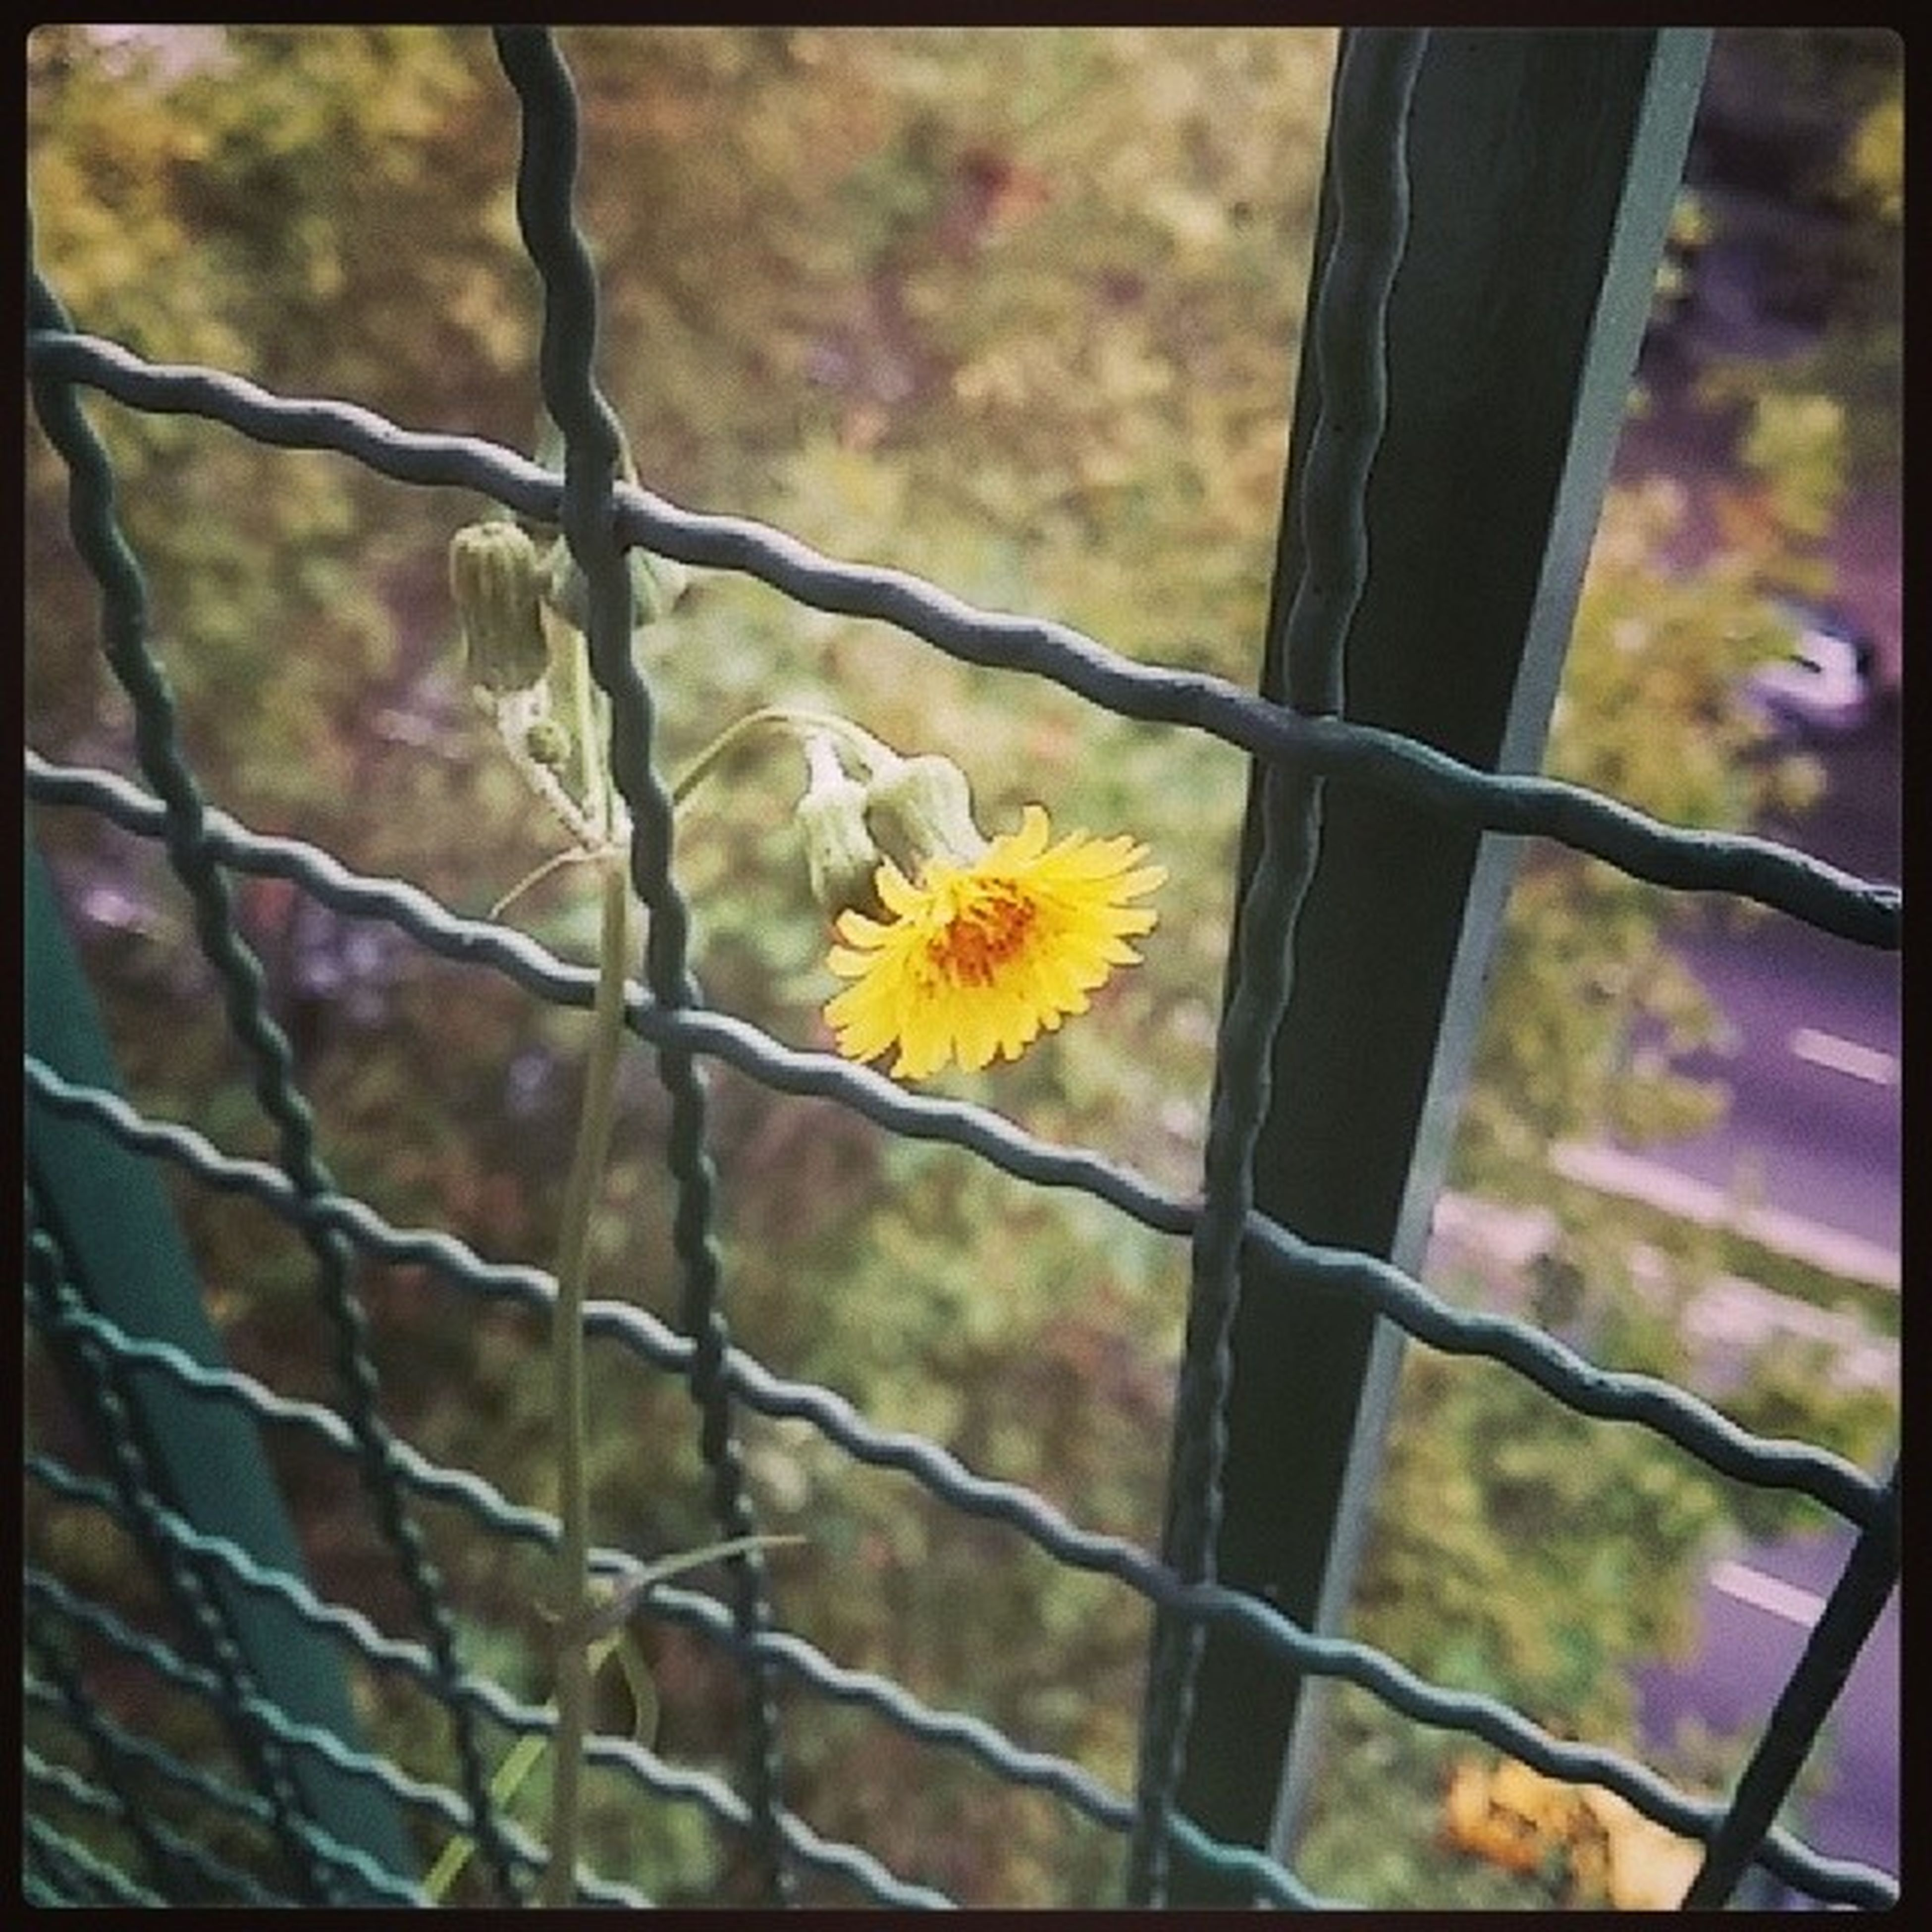 yellow, flower, fence, focus on foreground, chainlink fence, fragility, protection, close-up, growth, petal, flower head, transfer print, freshness, nature, plant, beauty in nature, safety, day, stem, outdoors